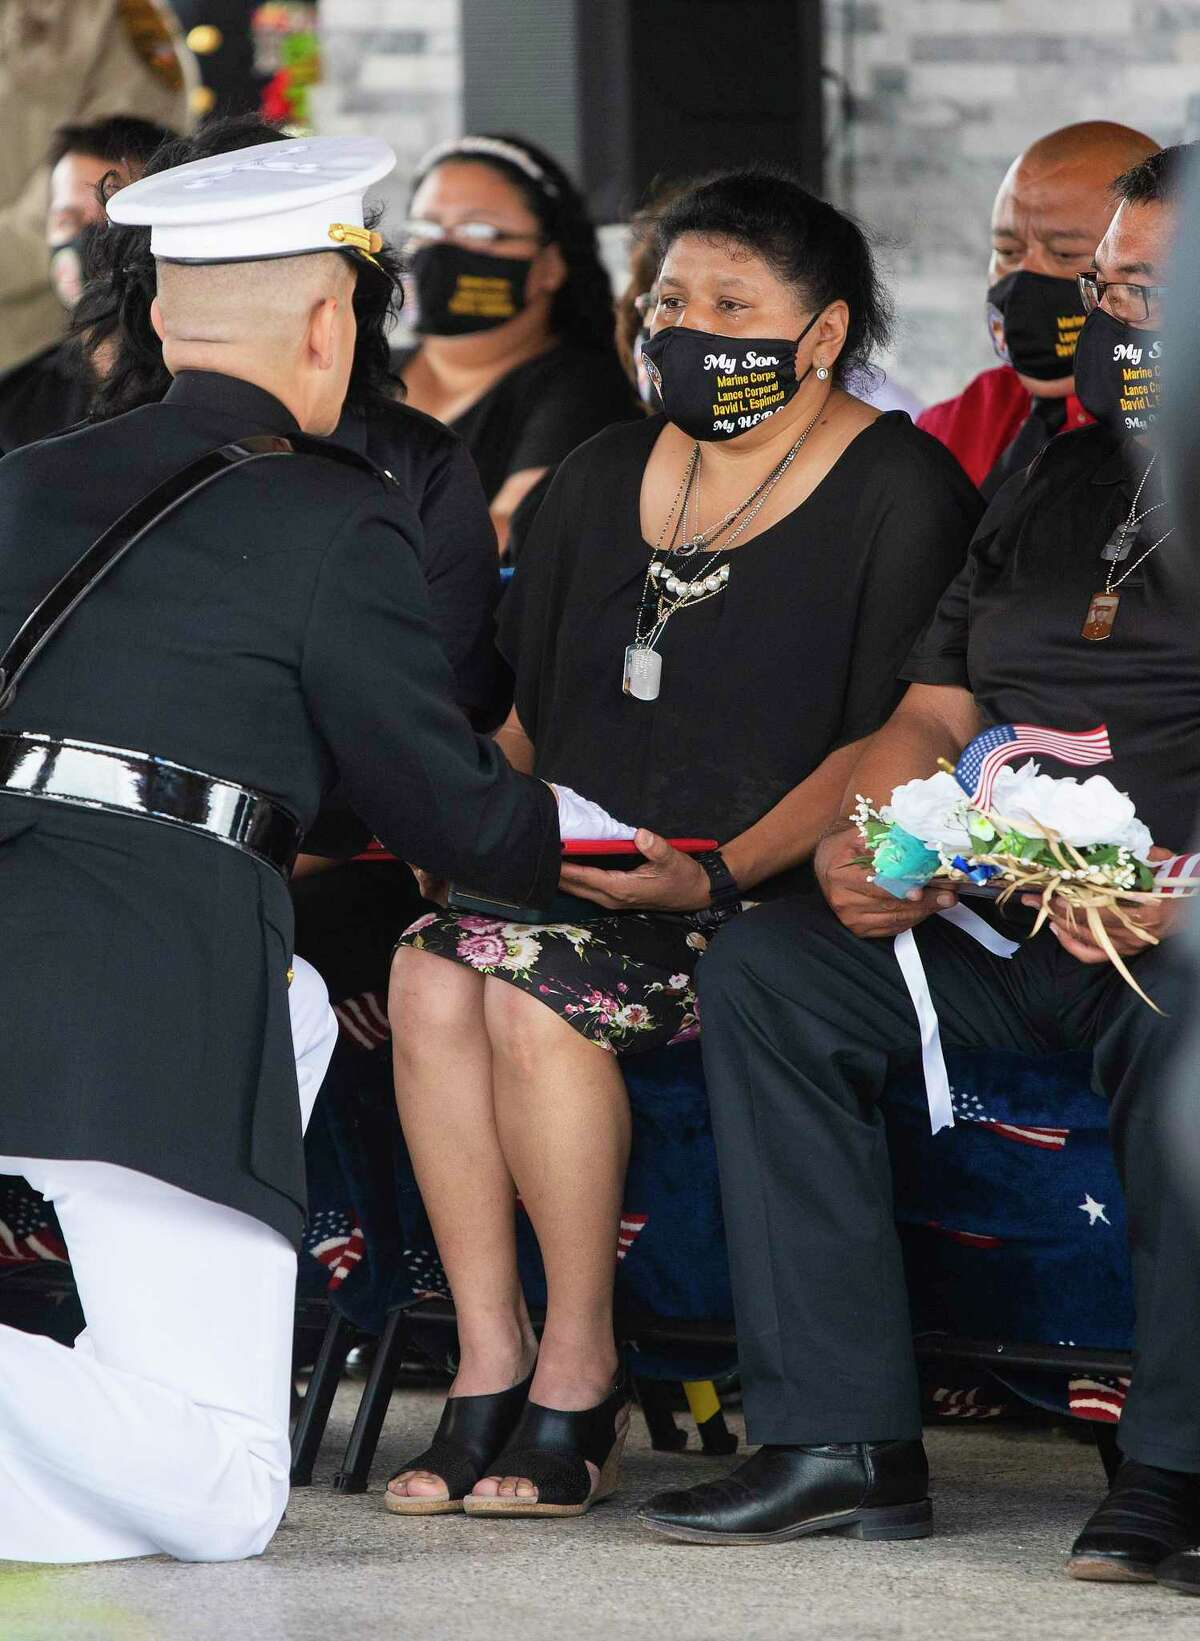 Lance Corporal David Lee Espinoza's mother, Elizabeth Holguin, is presented with Espinoza's Purple Heart, Monday, Sept. 13, 2021 at the City of Laredo Cemetery during a ceremony before Espinoza's burial.